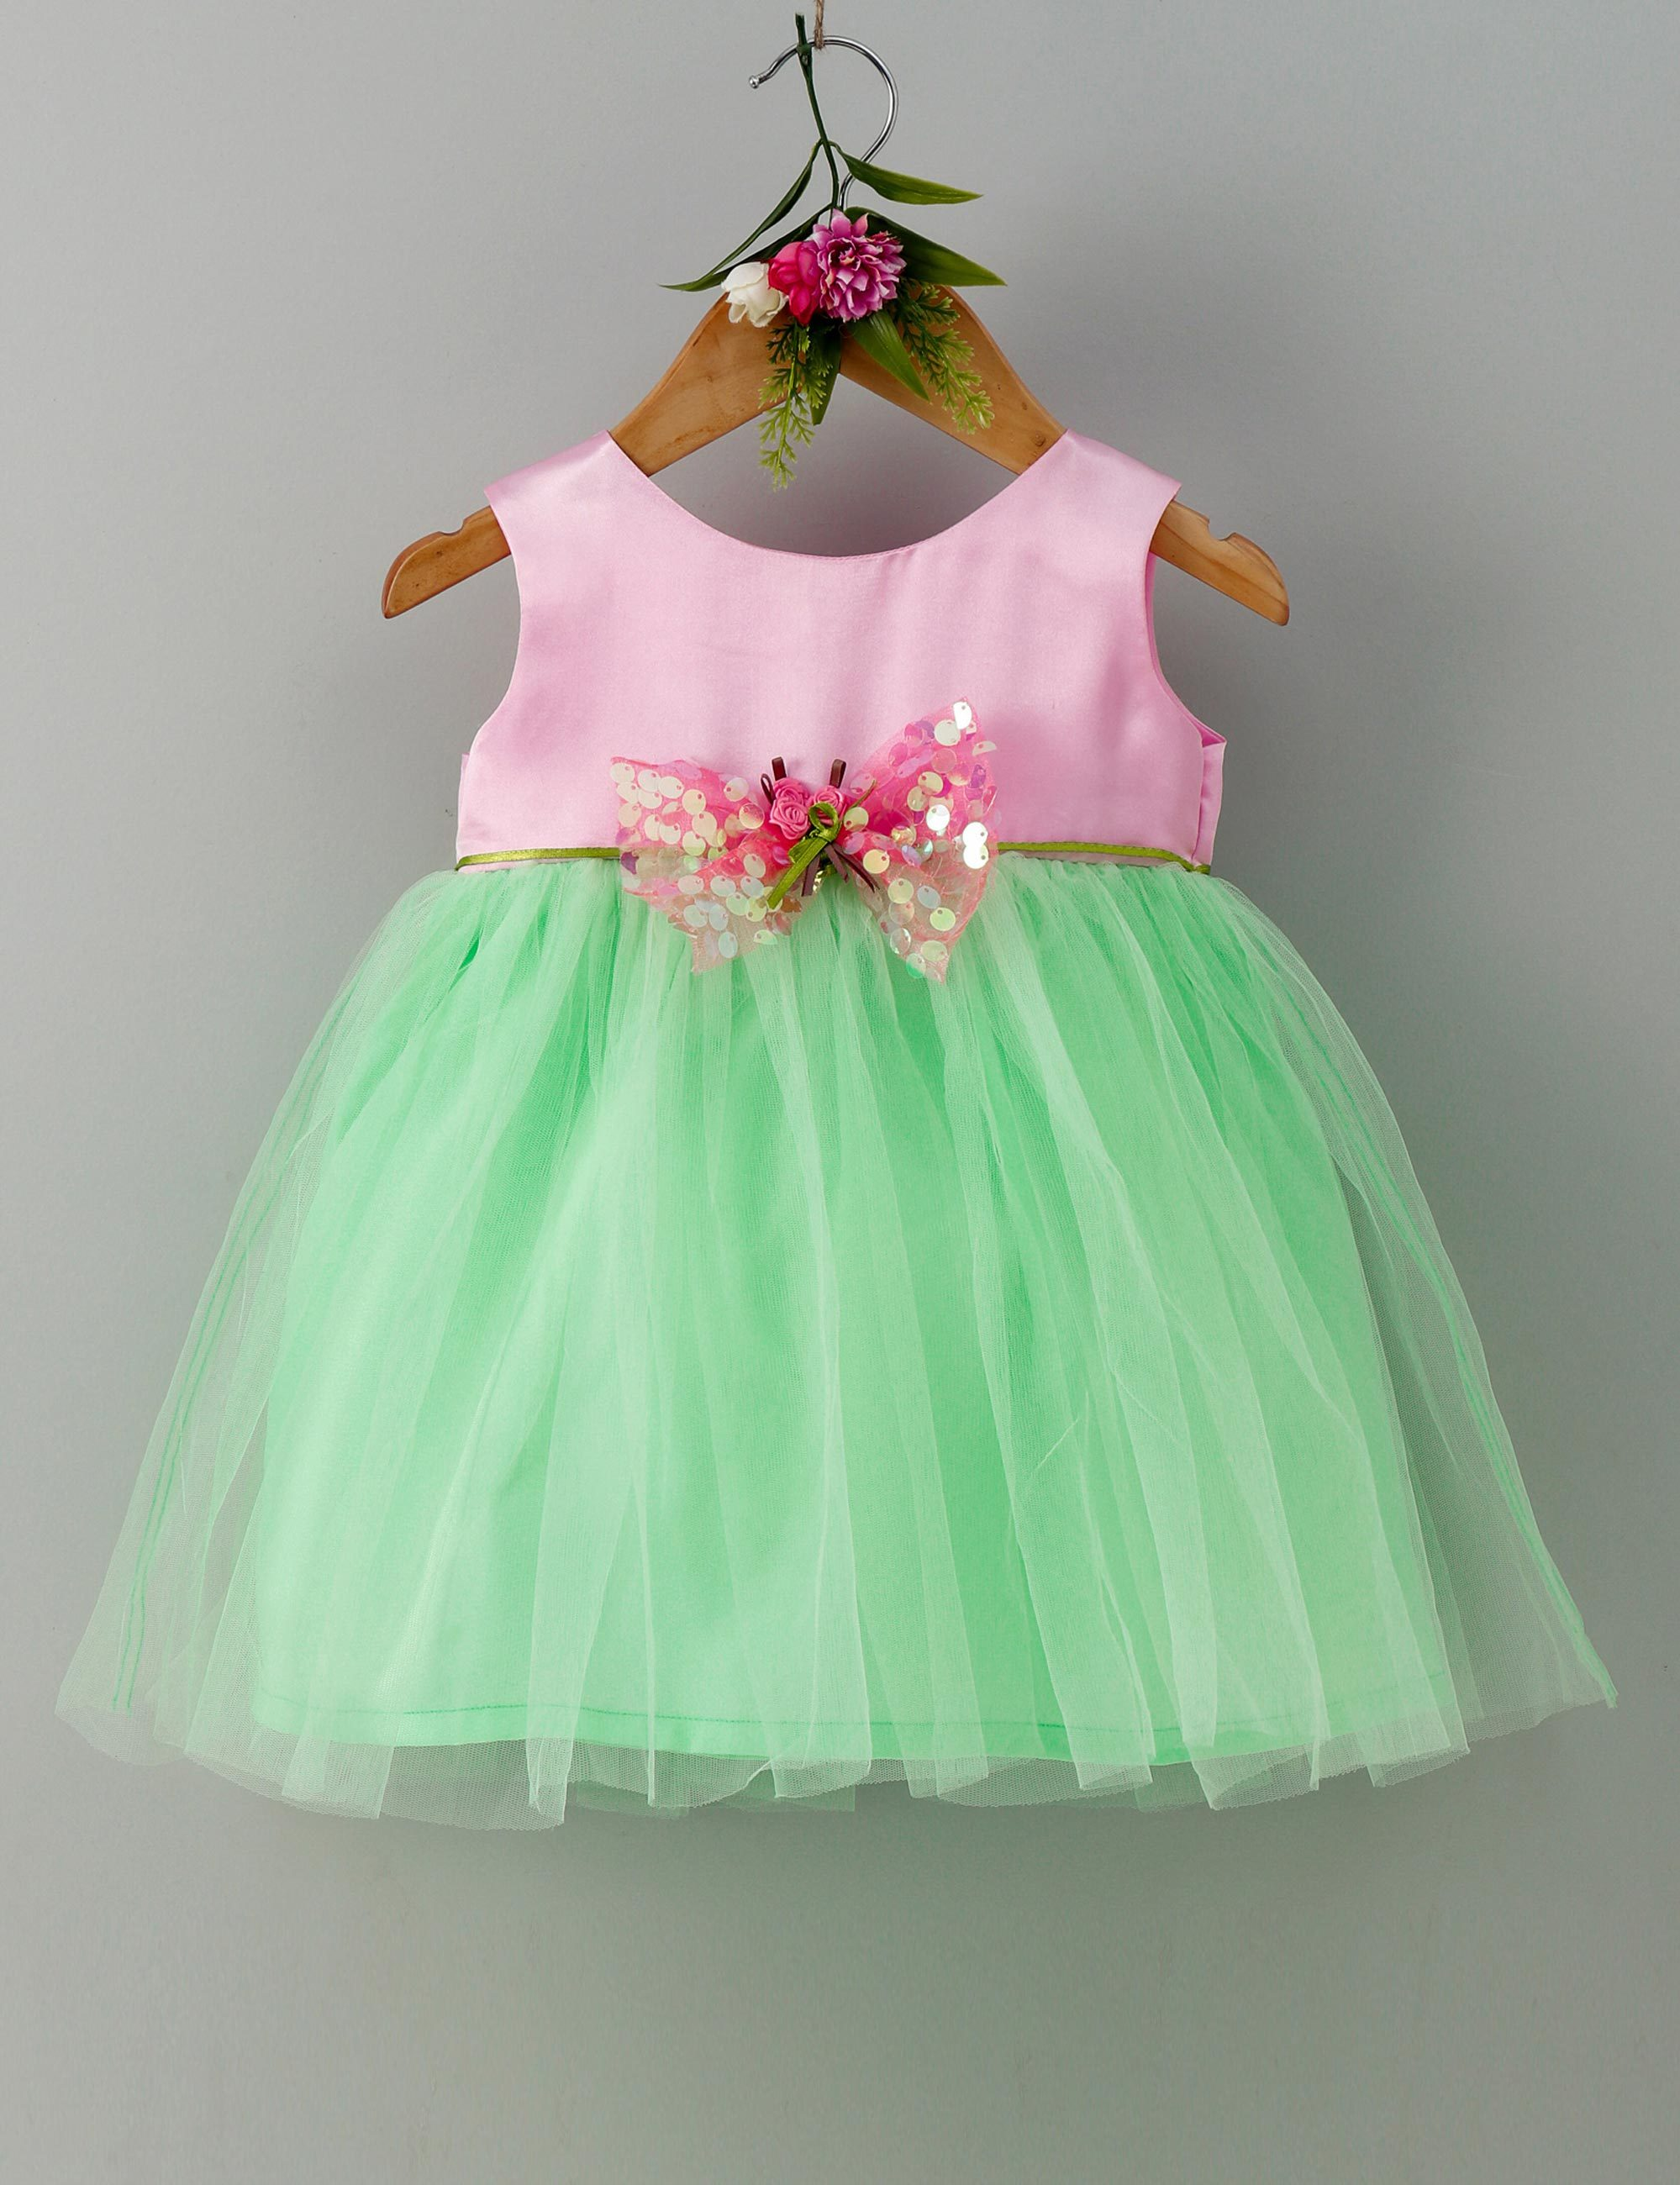 Sequins bow sleeveless baby party frock- Pink and Green